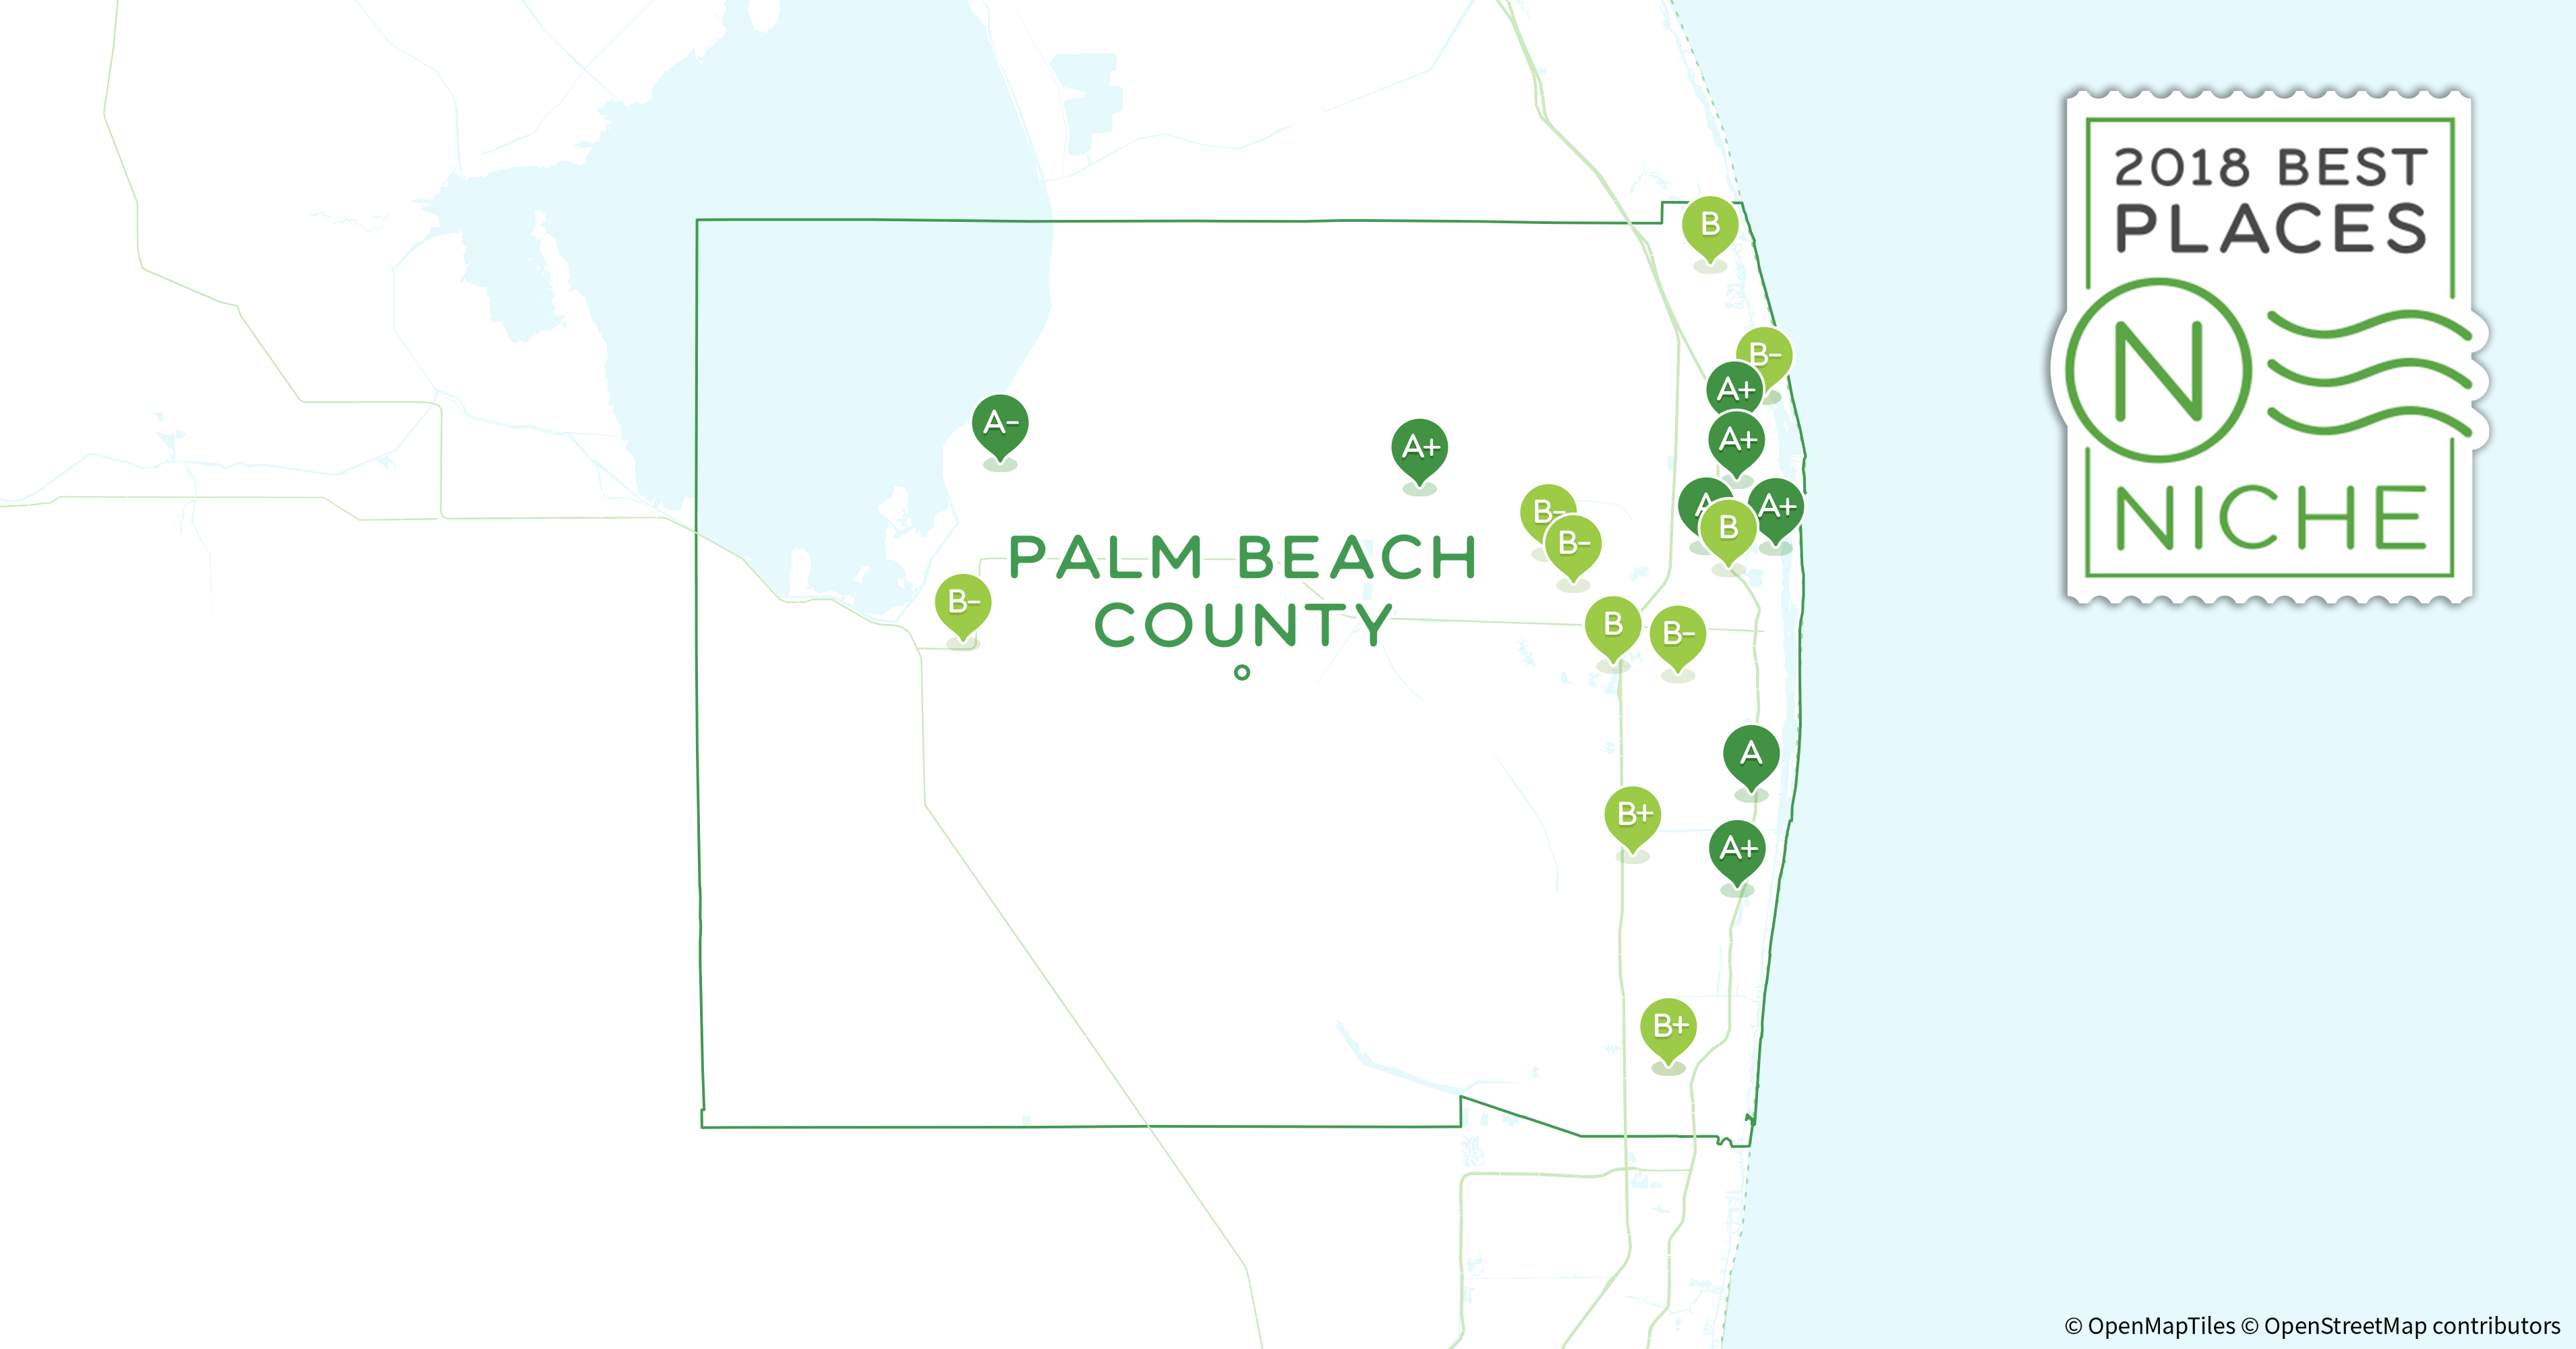 2018 Best Places to Live in Palm Beach County, FL - Niche Palm Beach County Map With Cities on prince george's county map with cities, sumter county map with cities, hernando county map with cities, madison county map with cities, midwestern united states map with cities, broward county map with cities, oklahoma county map with cities, contra costa county map with cities, mobile county map with cities, tx county map with cities, pinellas county map with cities, monroe county map with cities, oh county map with cities, martin county map with cities, orange county map with cities, dade county map with cities, palm beach city map, baltimore county map with cities, weld county map with cities, sarasota county map with cities,